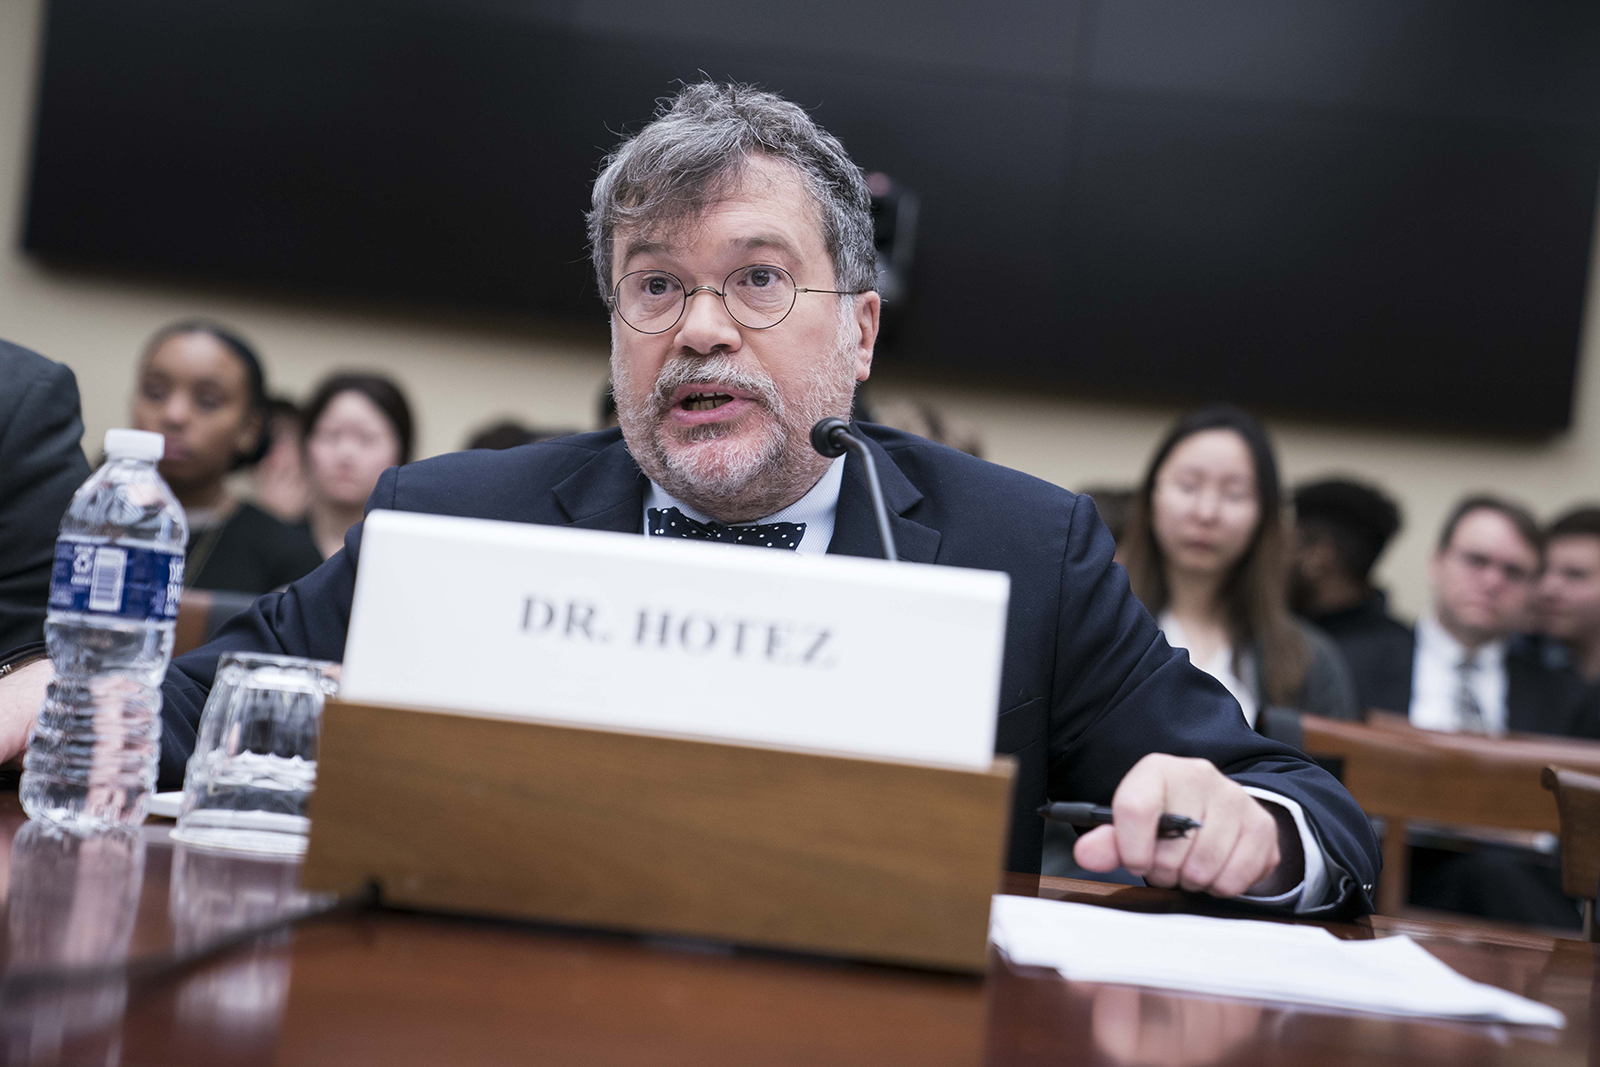 Peter Hotez, founding dean and chief of the Baylor College of Medicine National School of Tropical Medicine, speaks during a hearing on Capitol Hill in Washington, DC on March 5.